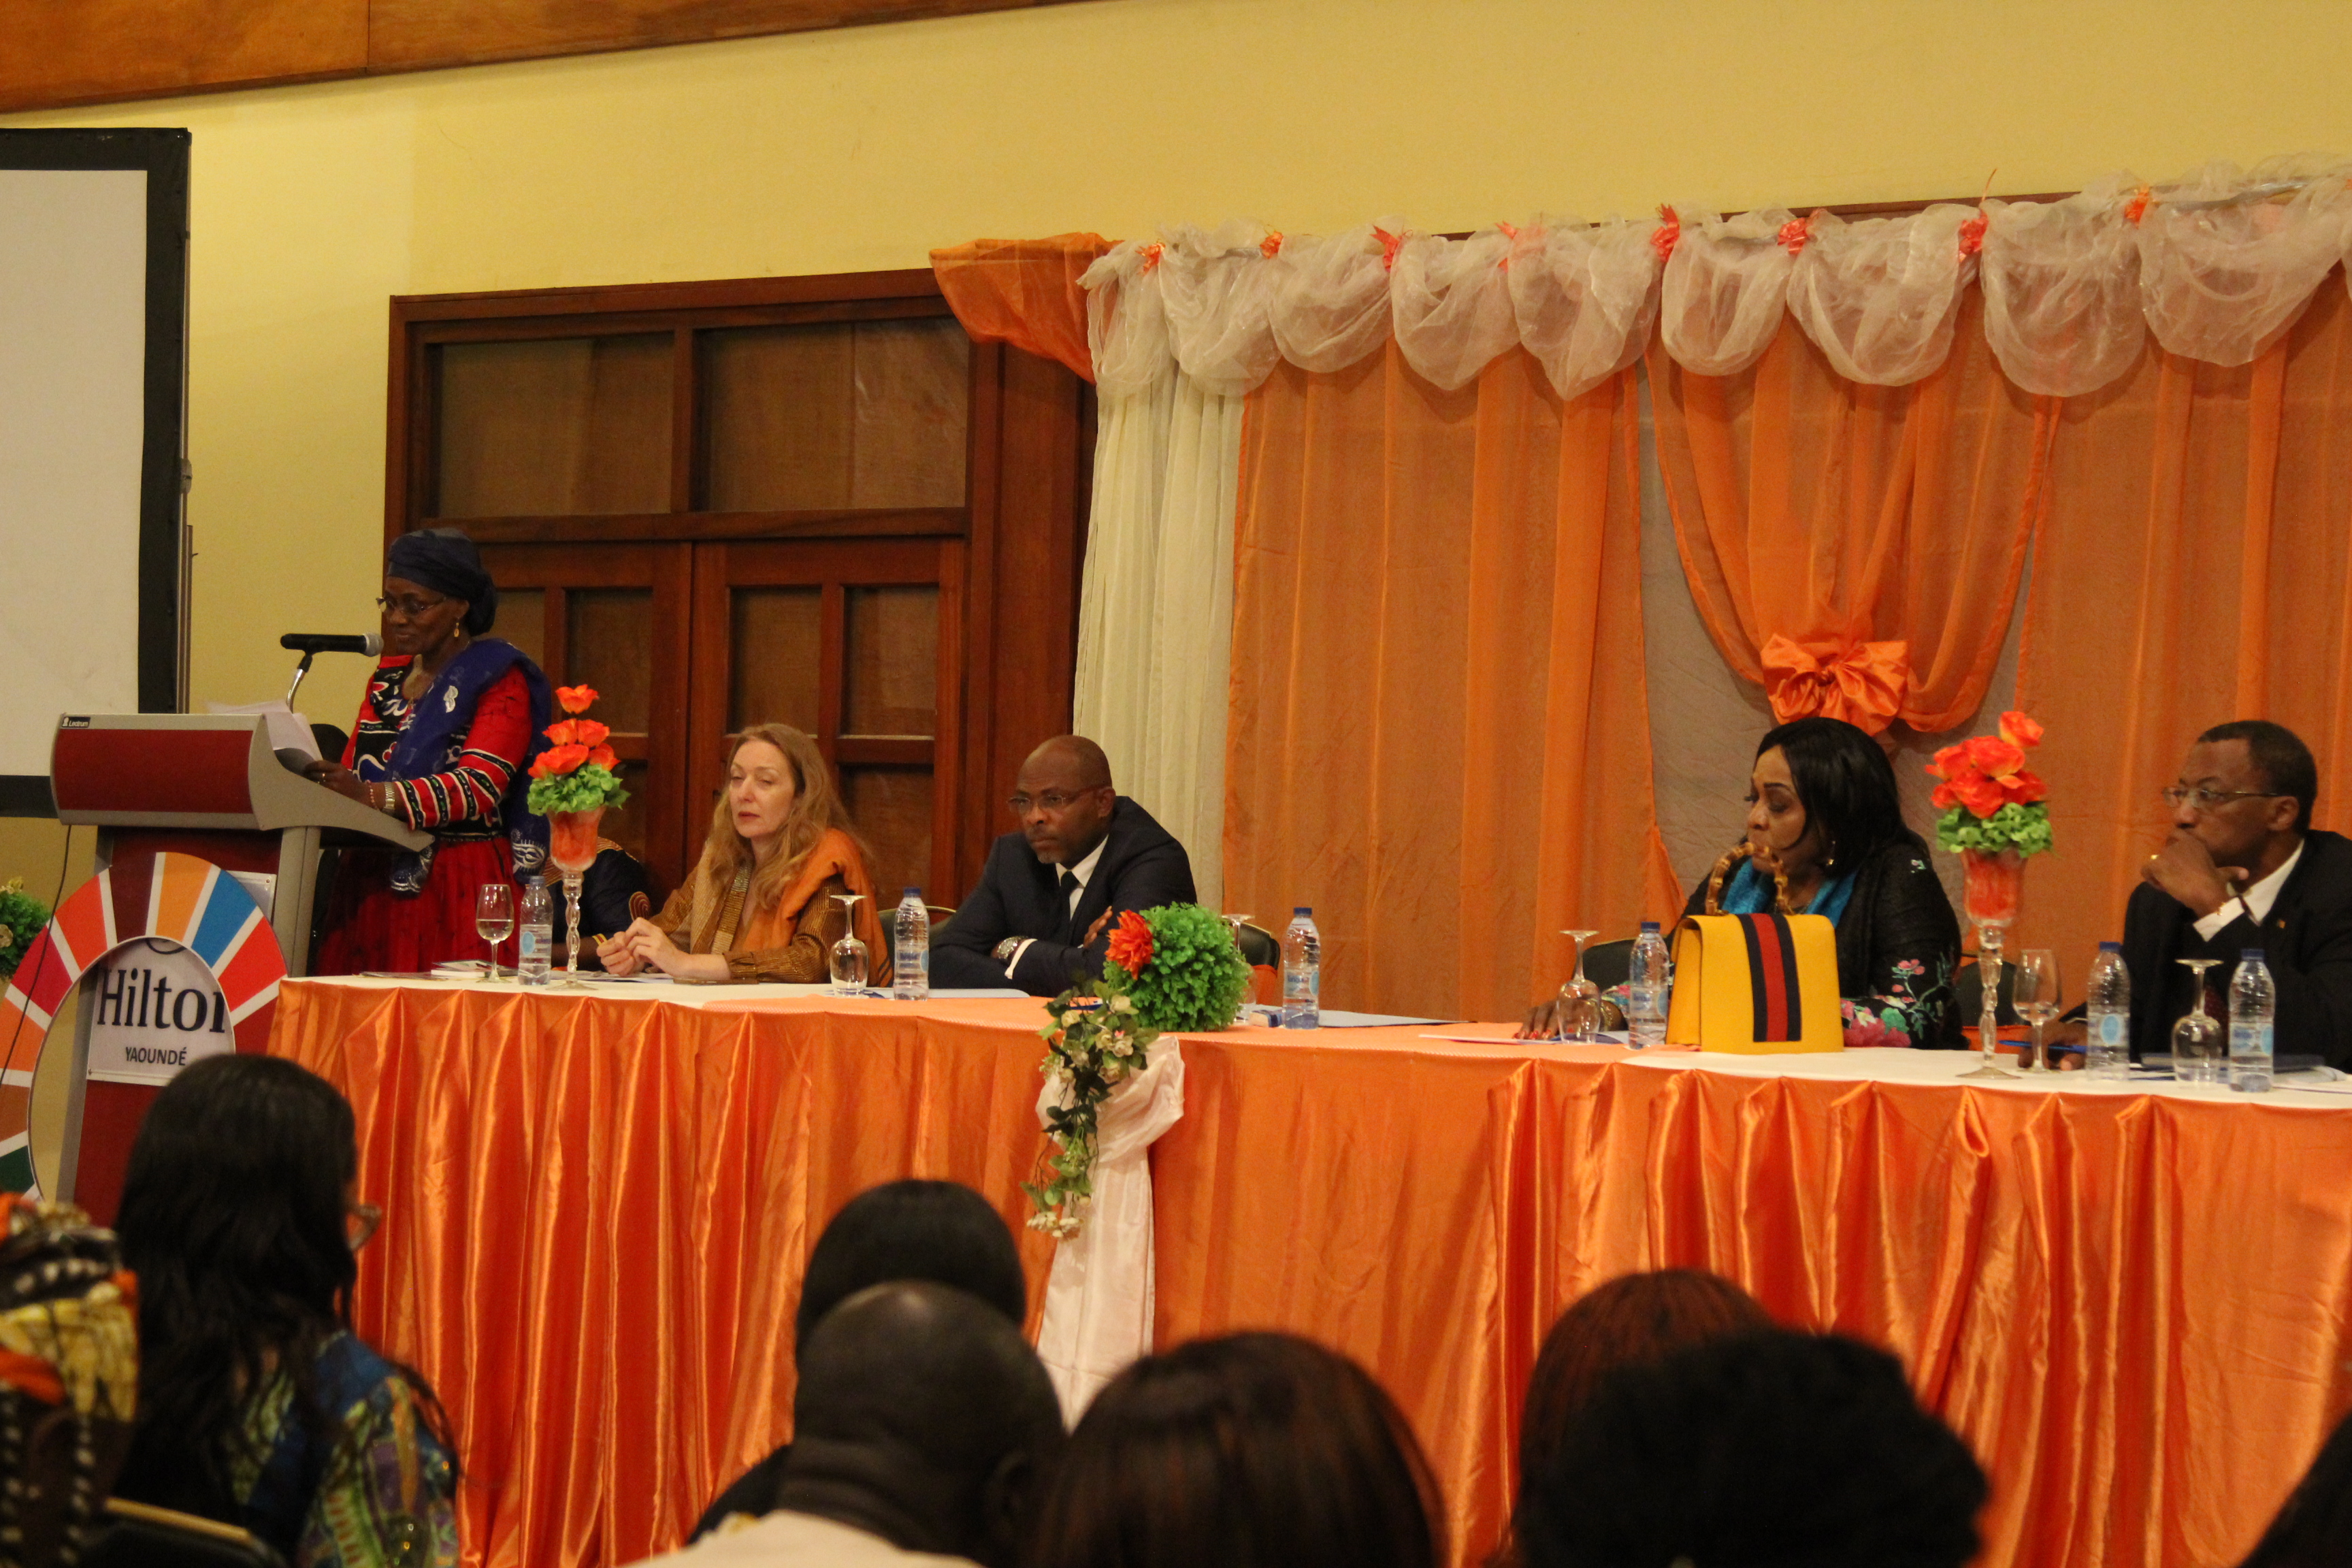 Minister Abena Ondoa Marie-Therese, Minister of Women Empowerment and the Family officially launched the 16 days of activism campaign in Cameroon with a call for the community to pay attention to the voice and sufferings of survivors. Photo credit: Teclaire Same/UN Women